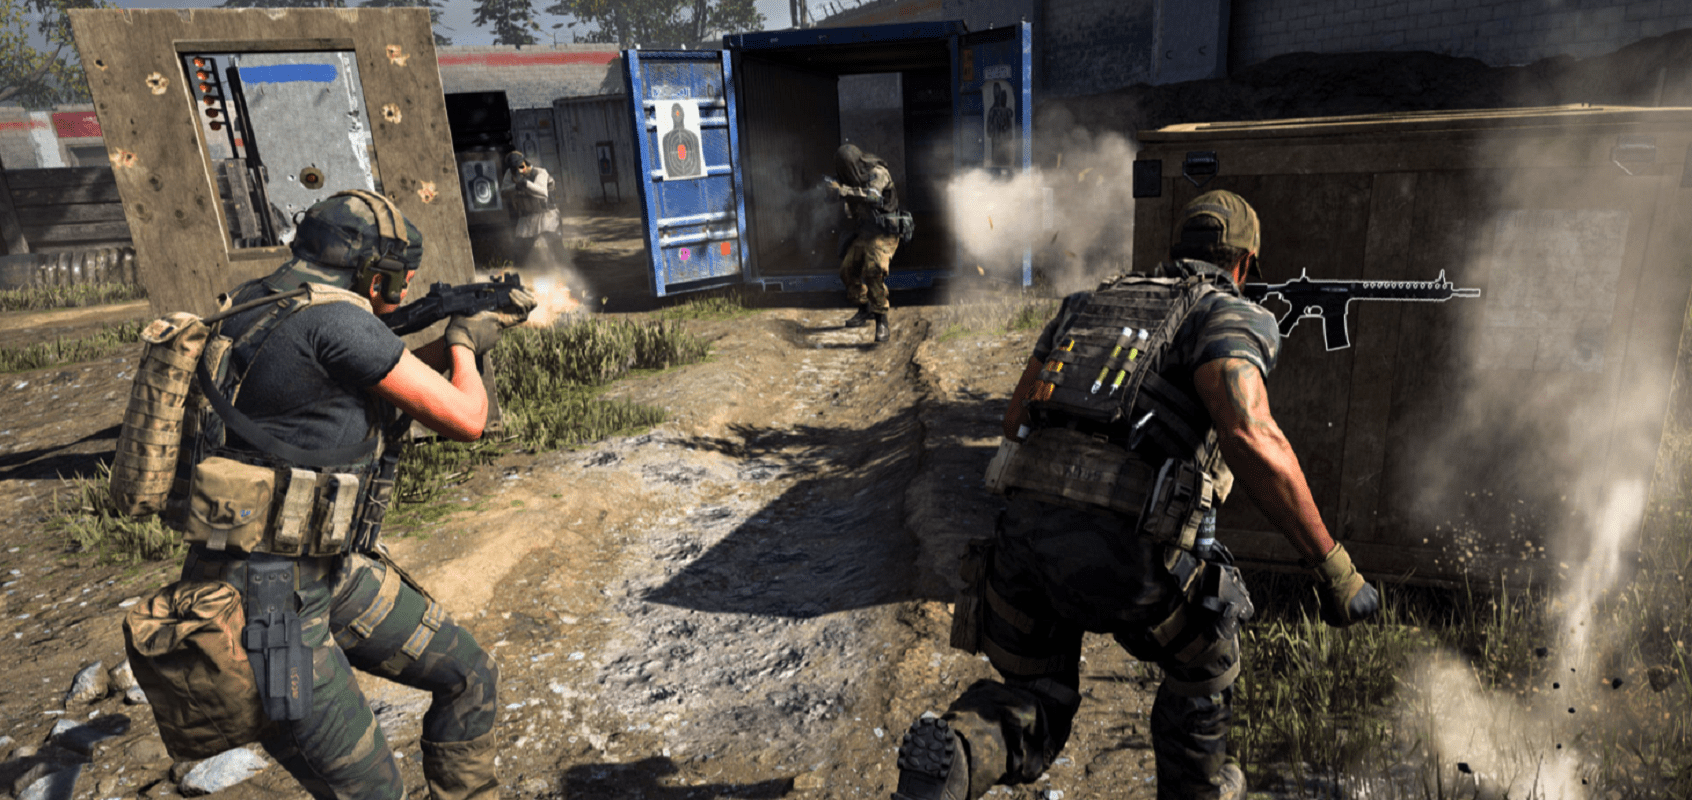 Two Limited-Time Modes Have Been Added To Call of Duty: Modern Warfare, Infected And GunFight O.S.P.